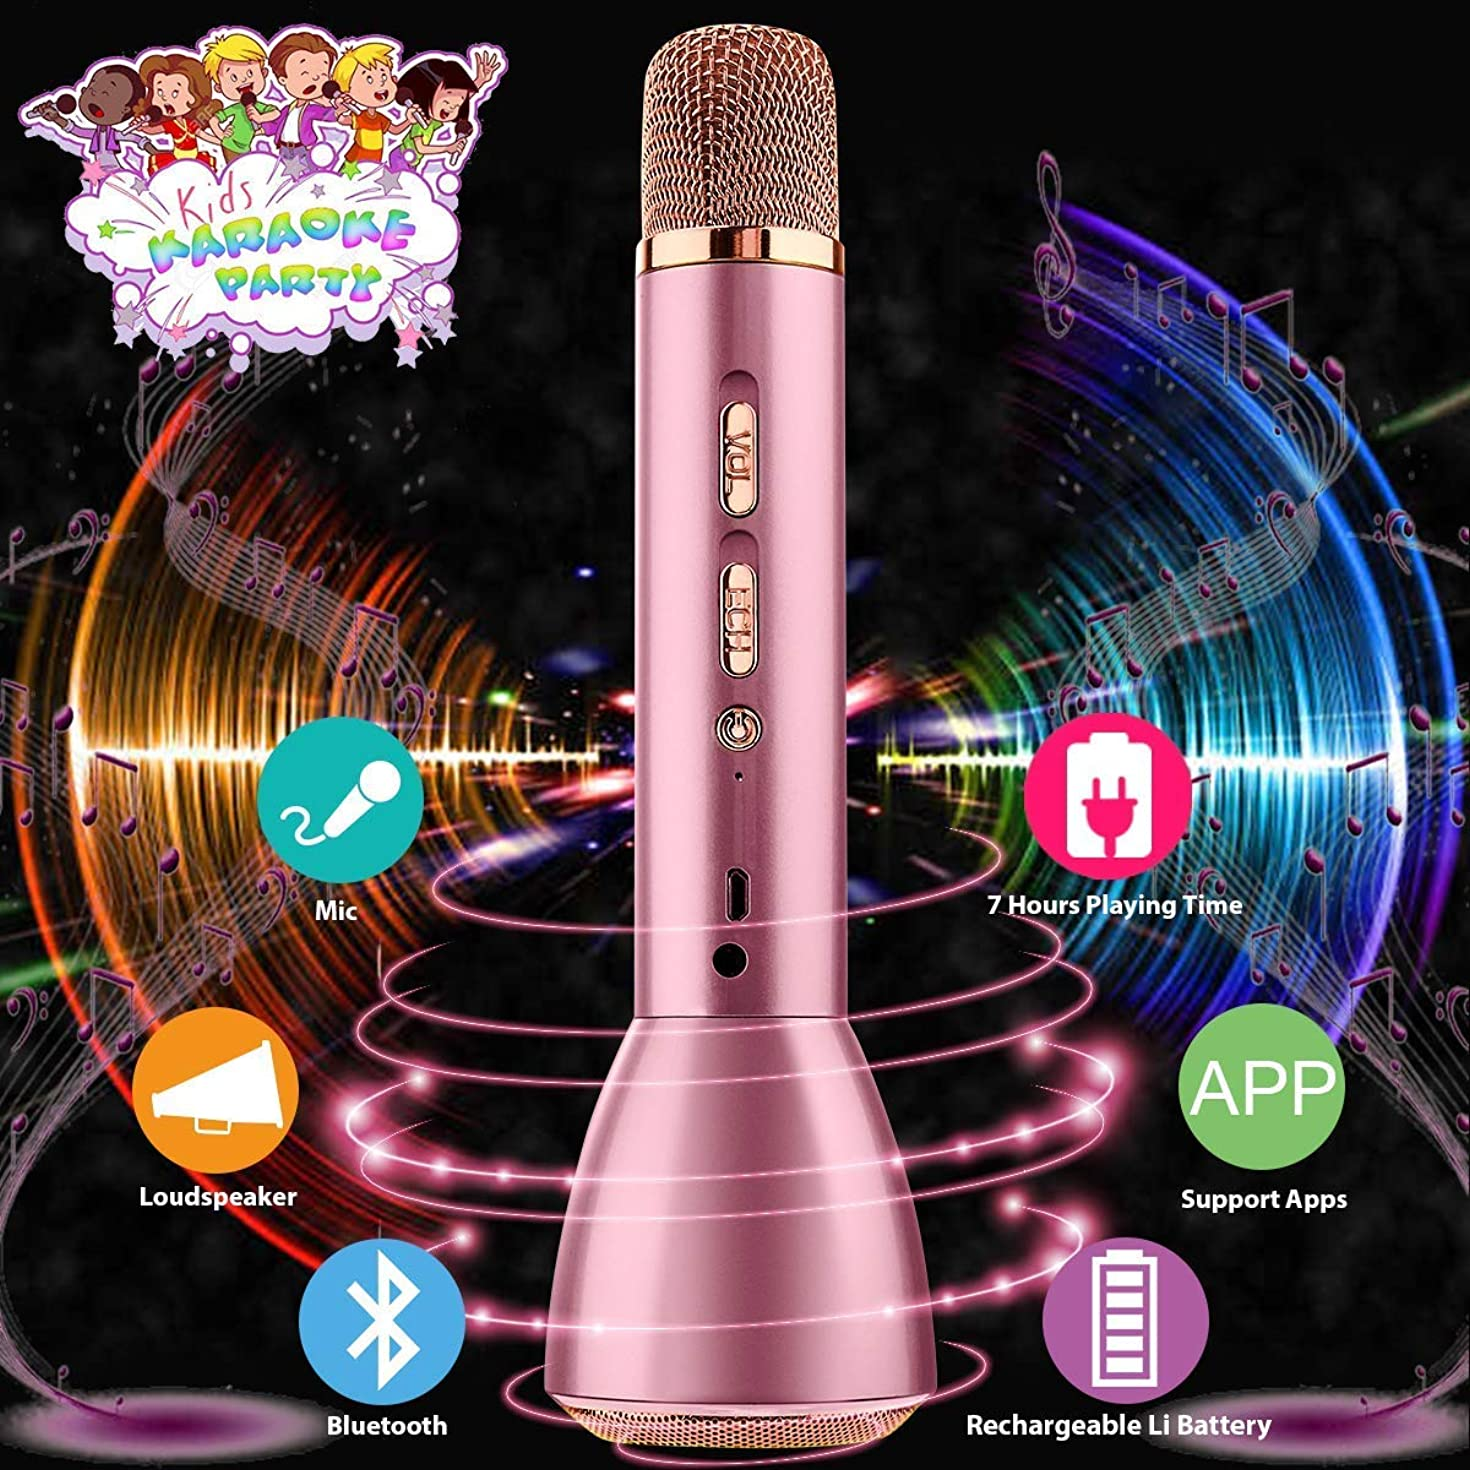 Wireless Kids Karaoke Microphone with Speaker, Portable Bluetooth Microphone Echo Child Karaoke Mic Machine for Kids Boys Girls Adult Singing Party Music Playing Support Android iOS Smartphone(Pink)